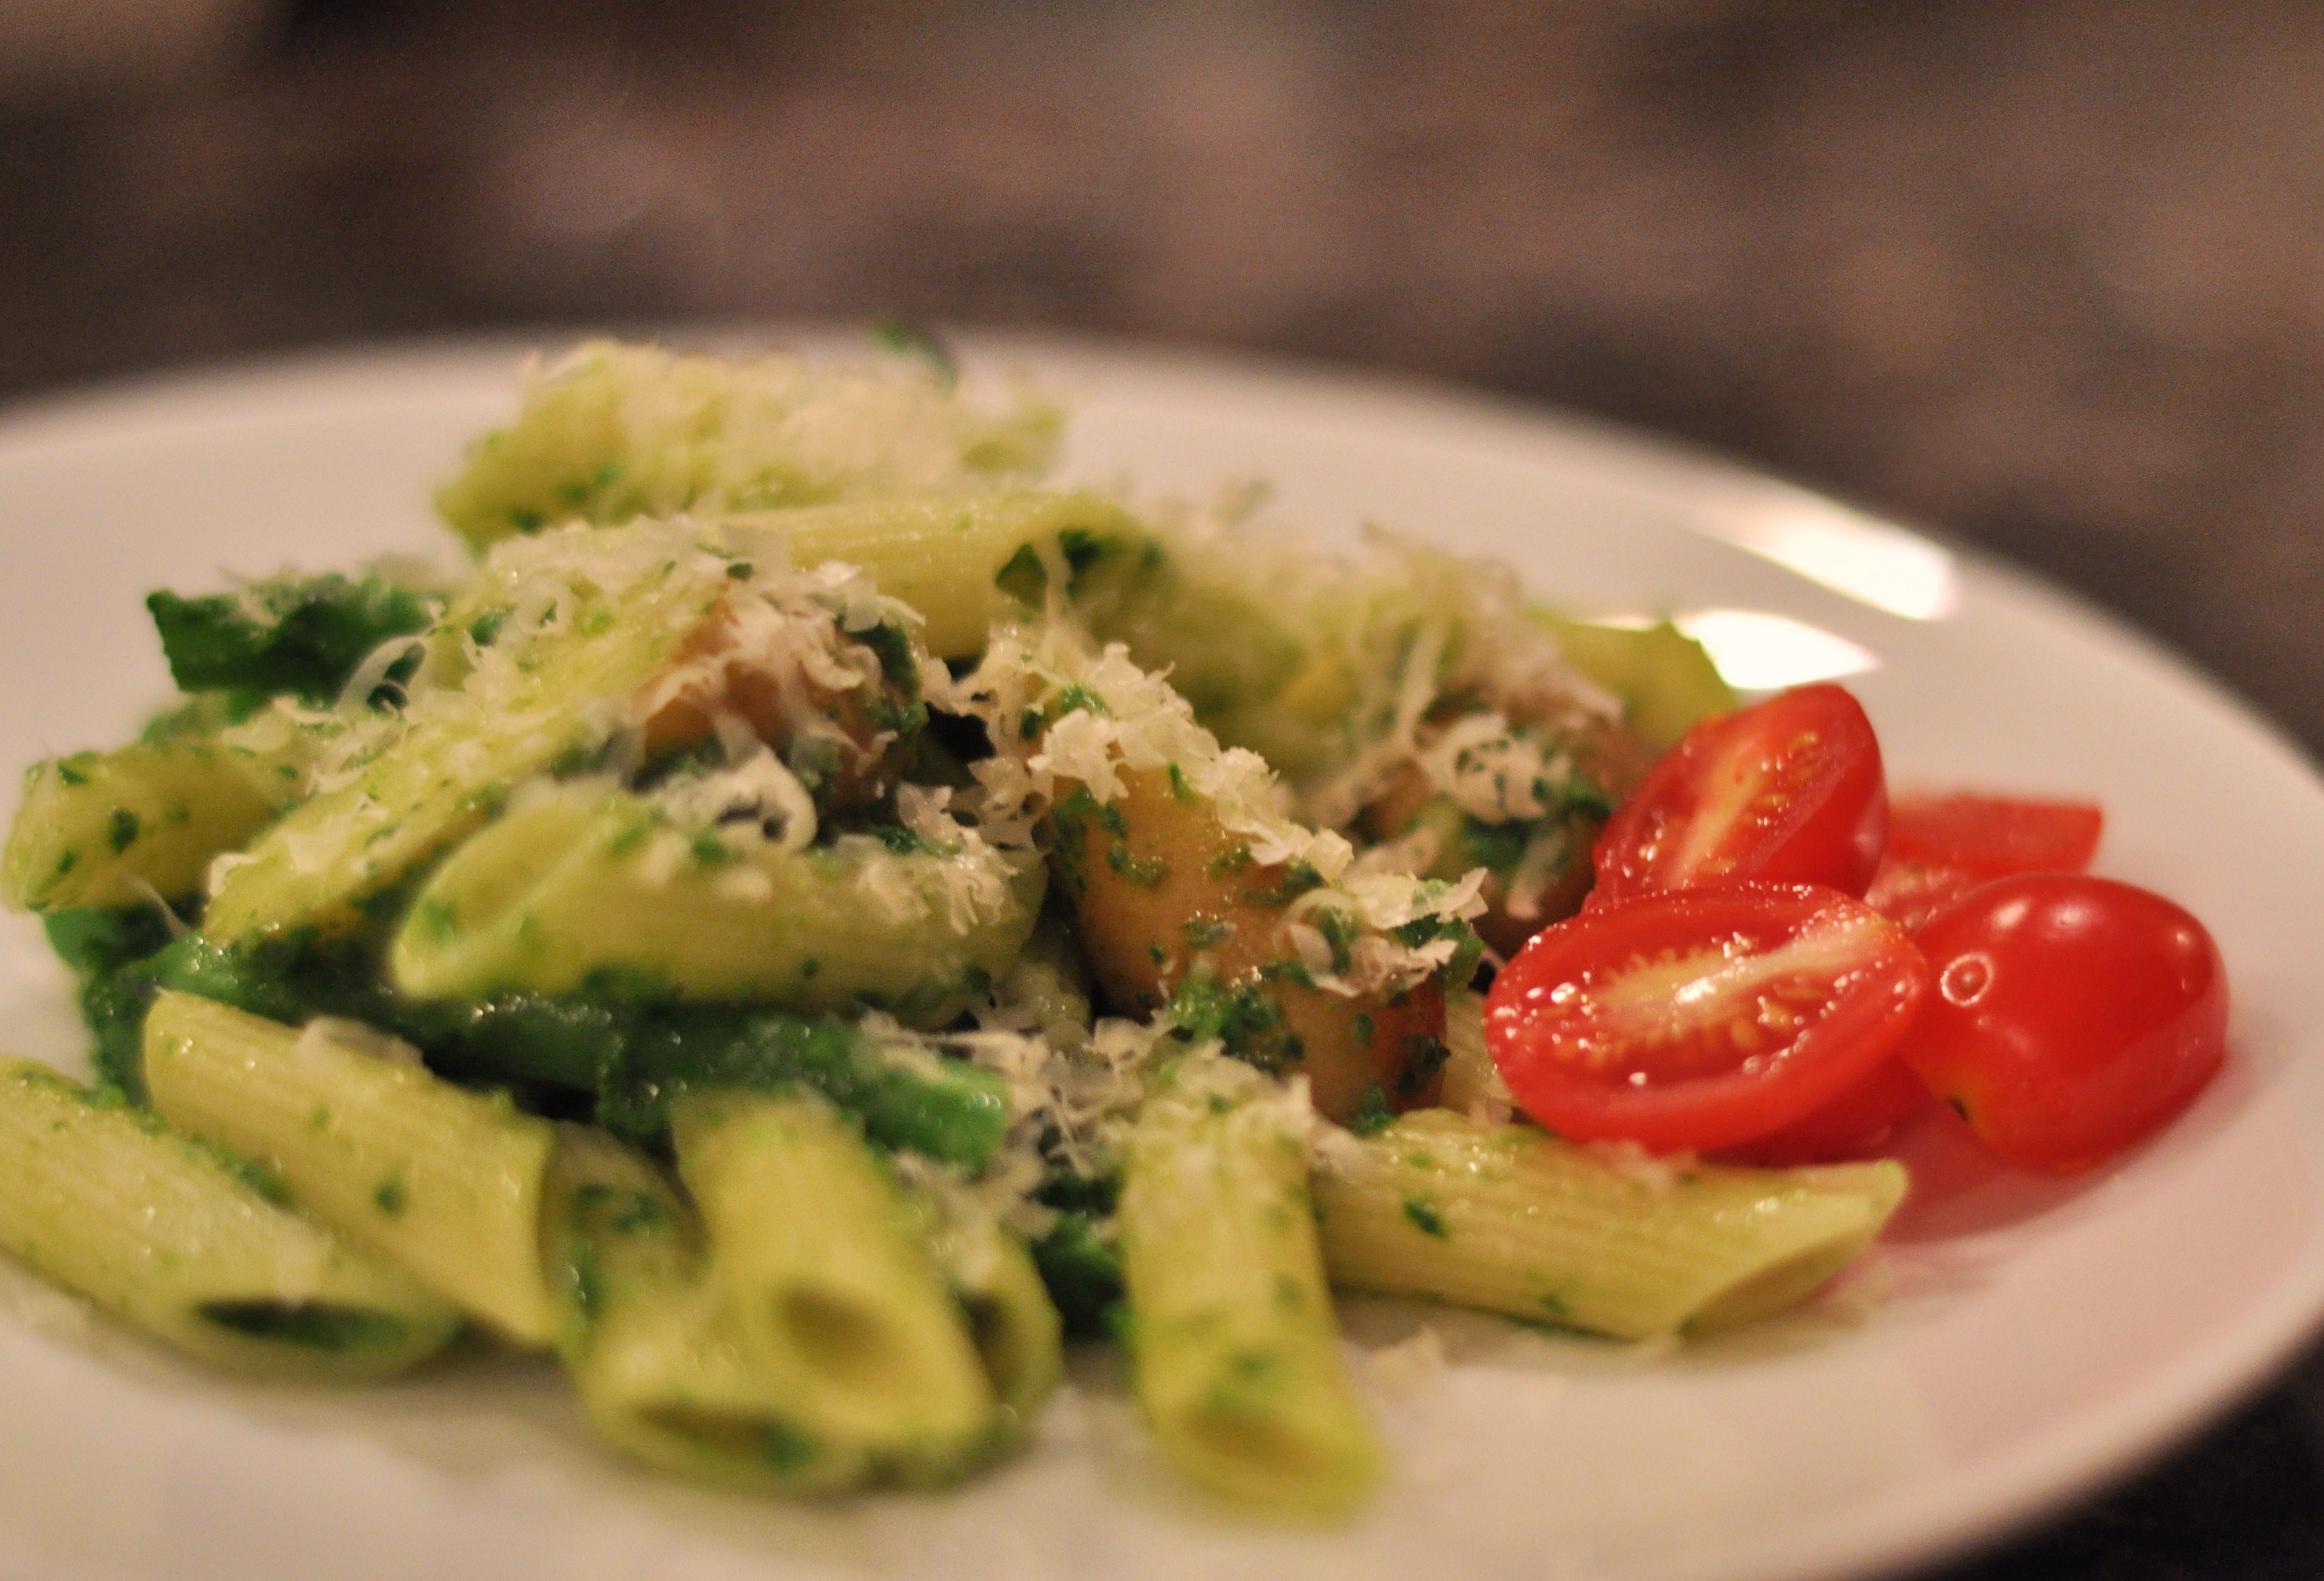 Ramp and Green Garlic Pesto and a Riff on a Genoese Favorite